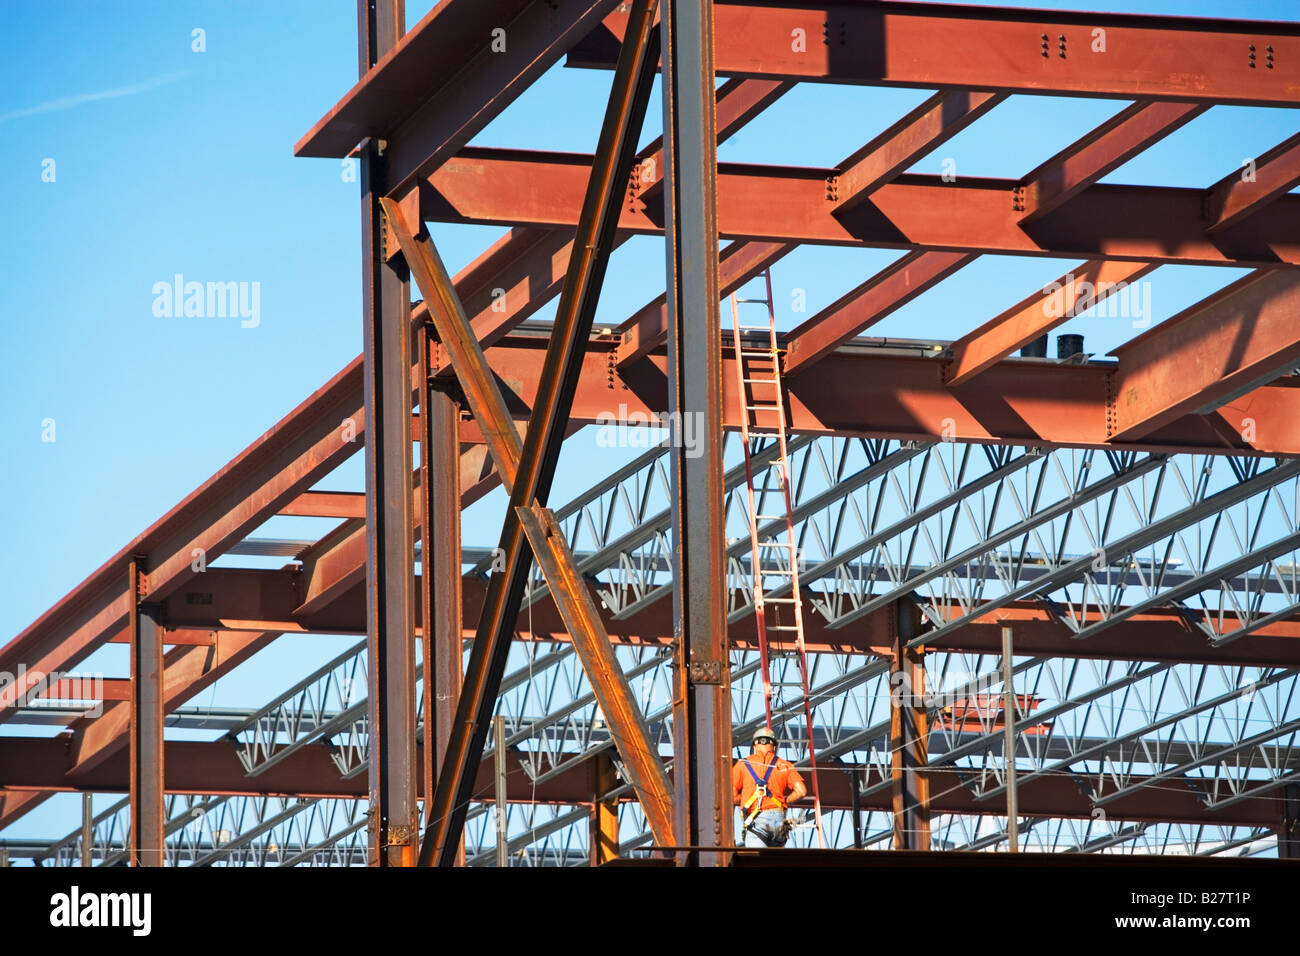 Commercial construction site, New York City, New York, United States Stock Photo